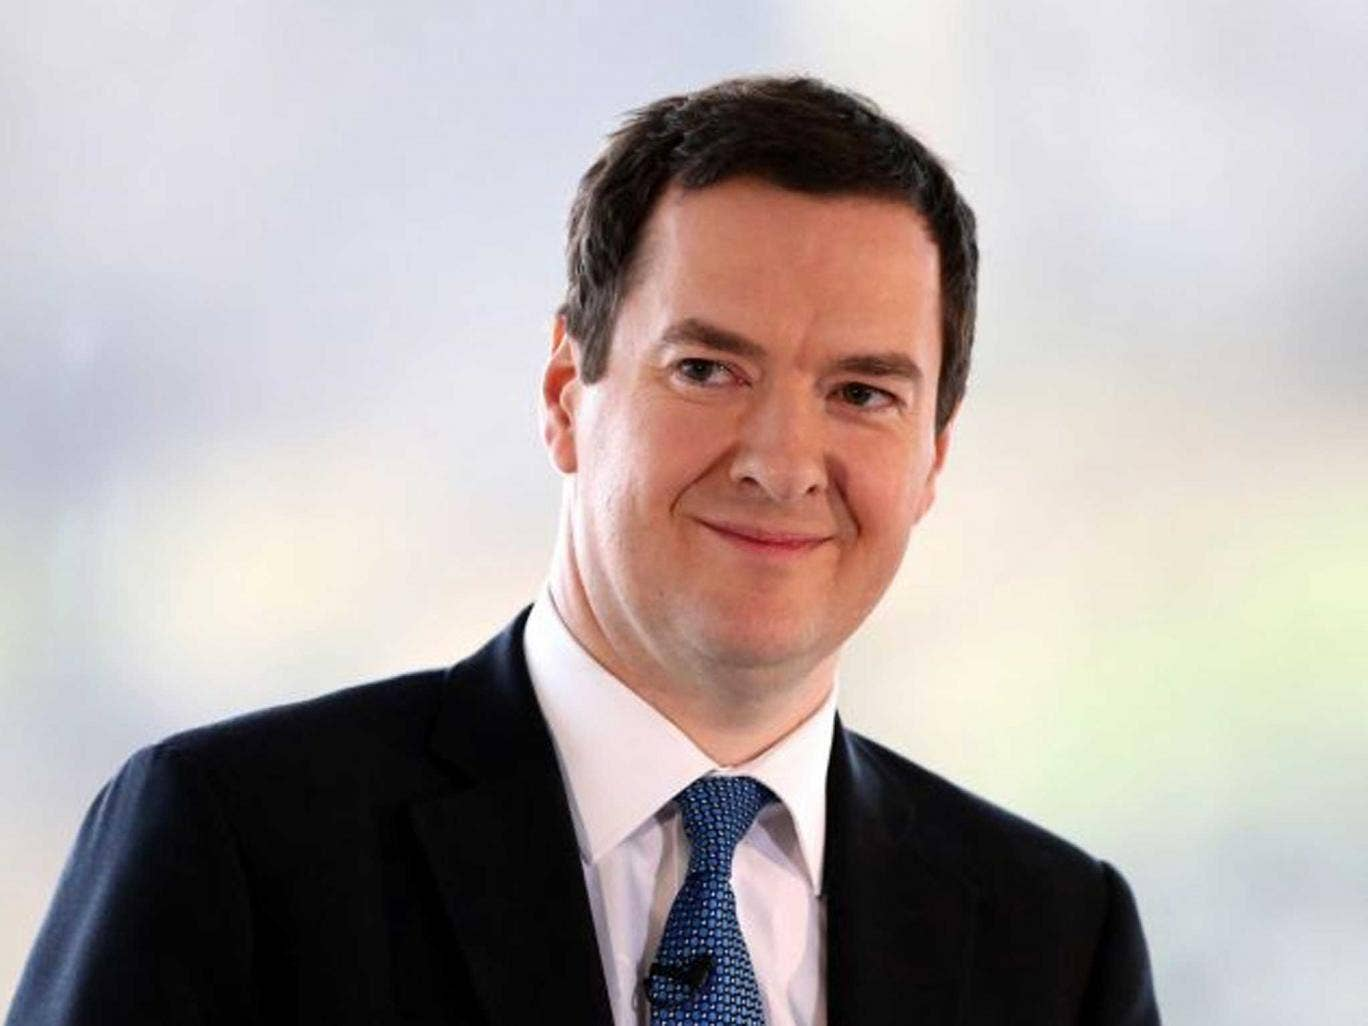 Could George Osborne be the next Conservative leader?